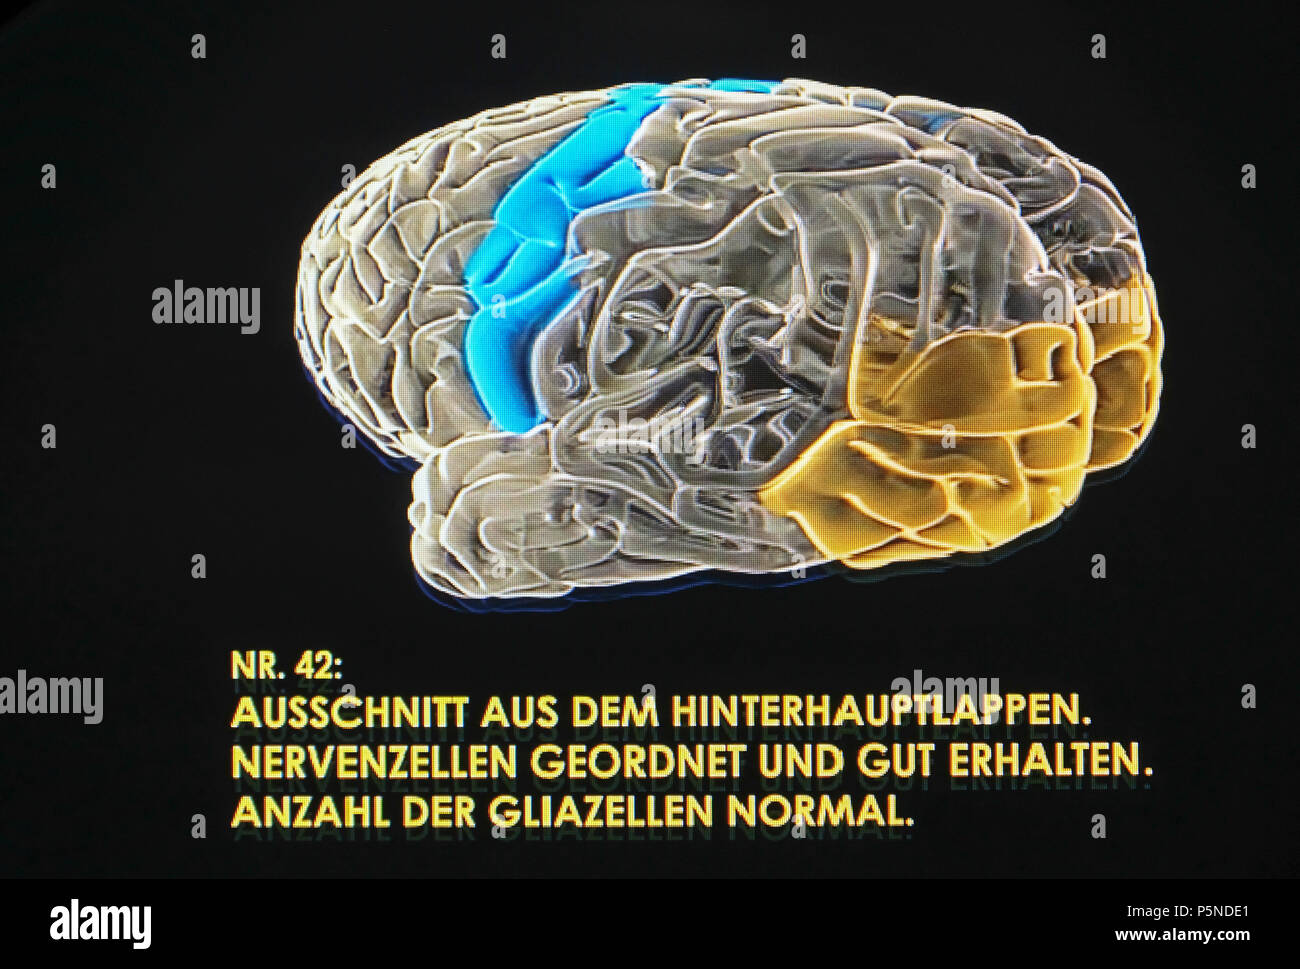 A three-dimensional hologram of the brain of Albert Einstein (1879-1955) is shown in the exhibition 'The Brain - Intelligence, Awareness, Feeling' in the LWL Museum of Natural History, Münster, Germany, Jujy 2018 (Lender: Muetter Museum, Philadelphie) - Stock Image